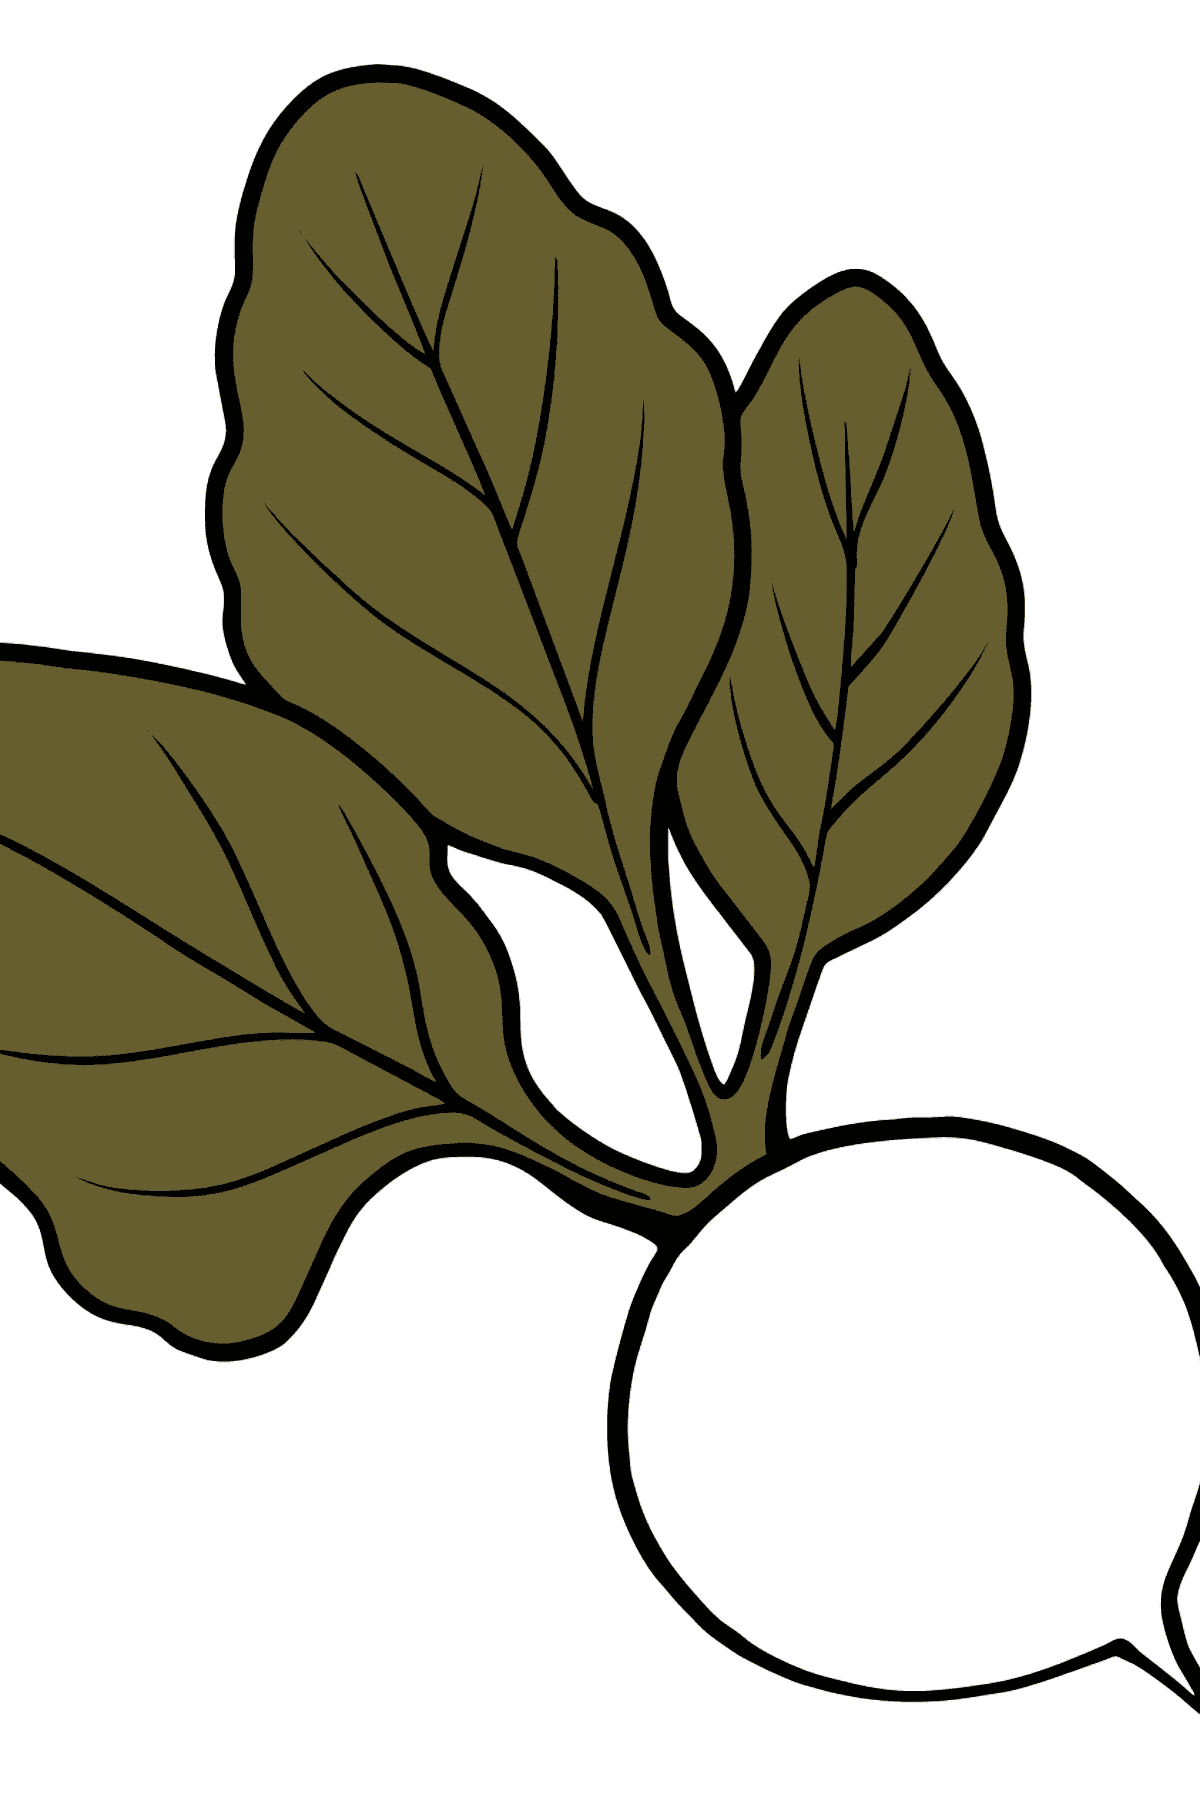 Beet coloring page - Coloring Pages for Kids